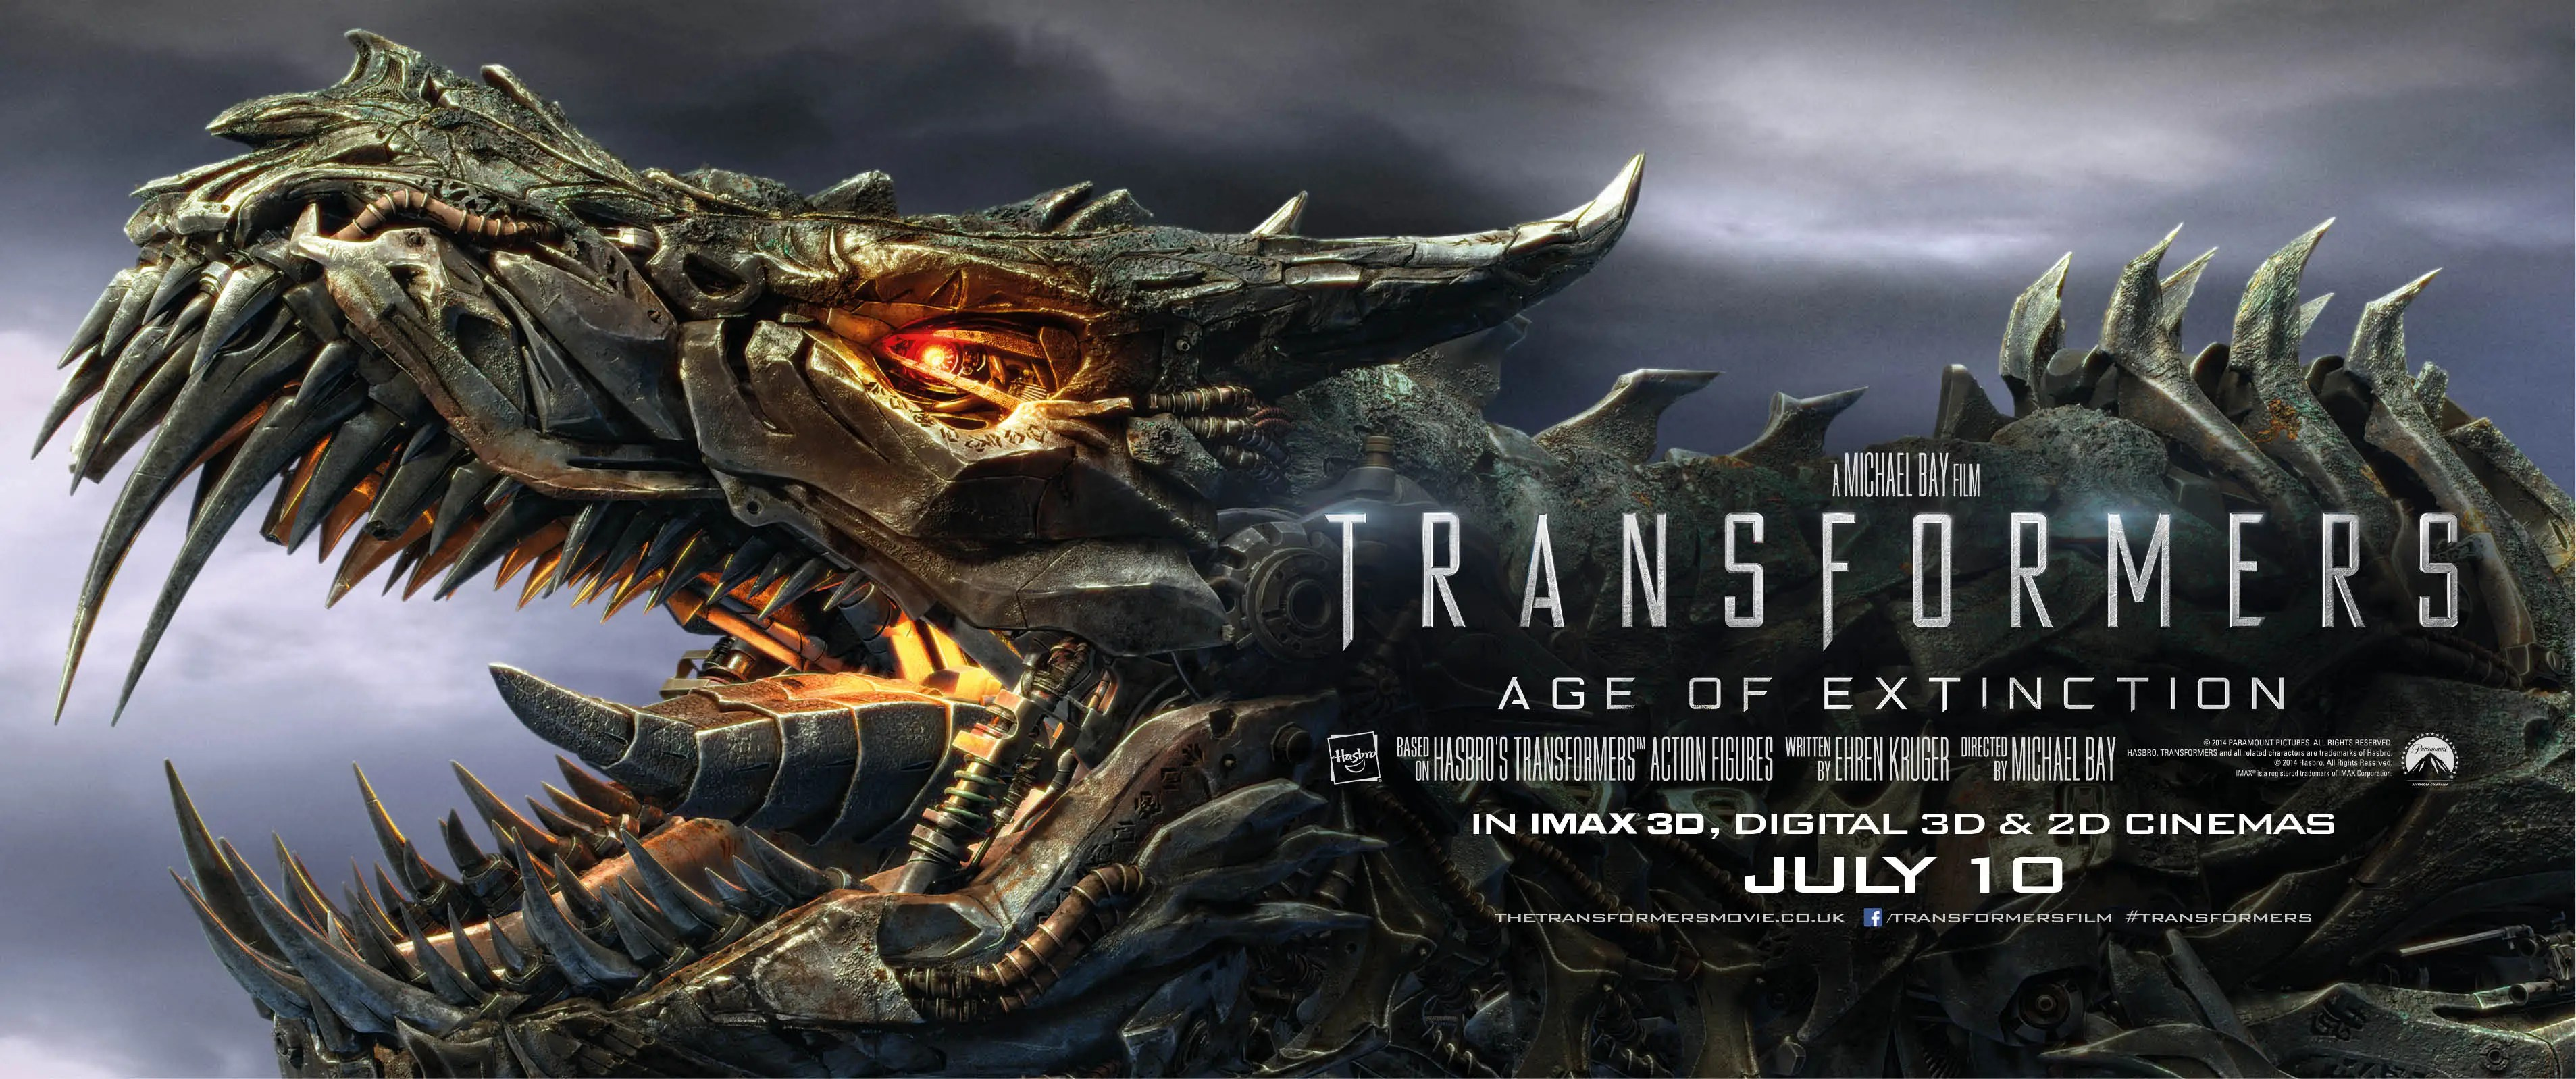 New Trailer rolls in for Transformers: Age of Extinction + New Posters